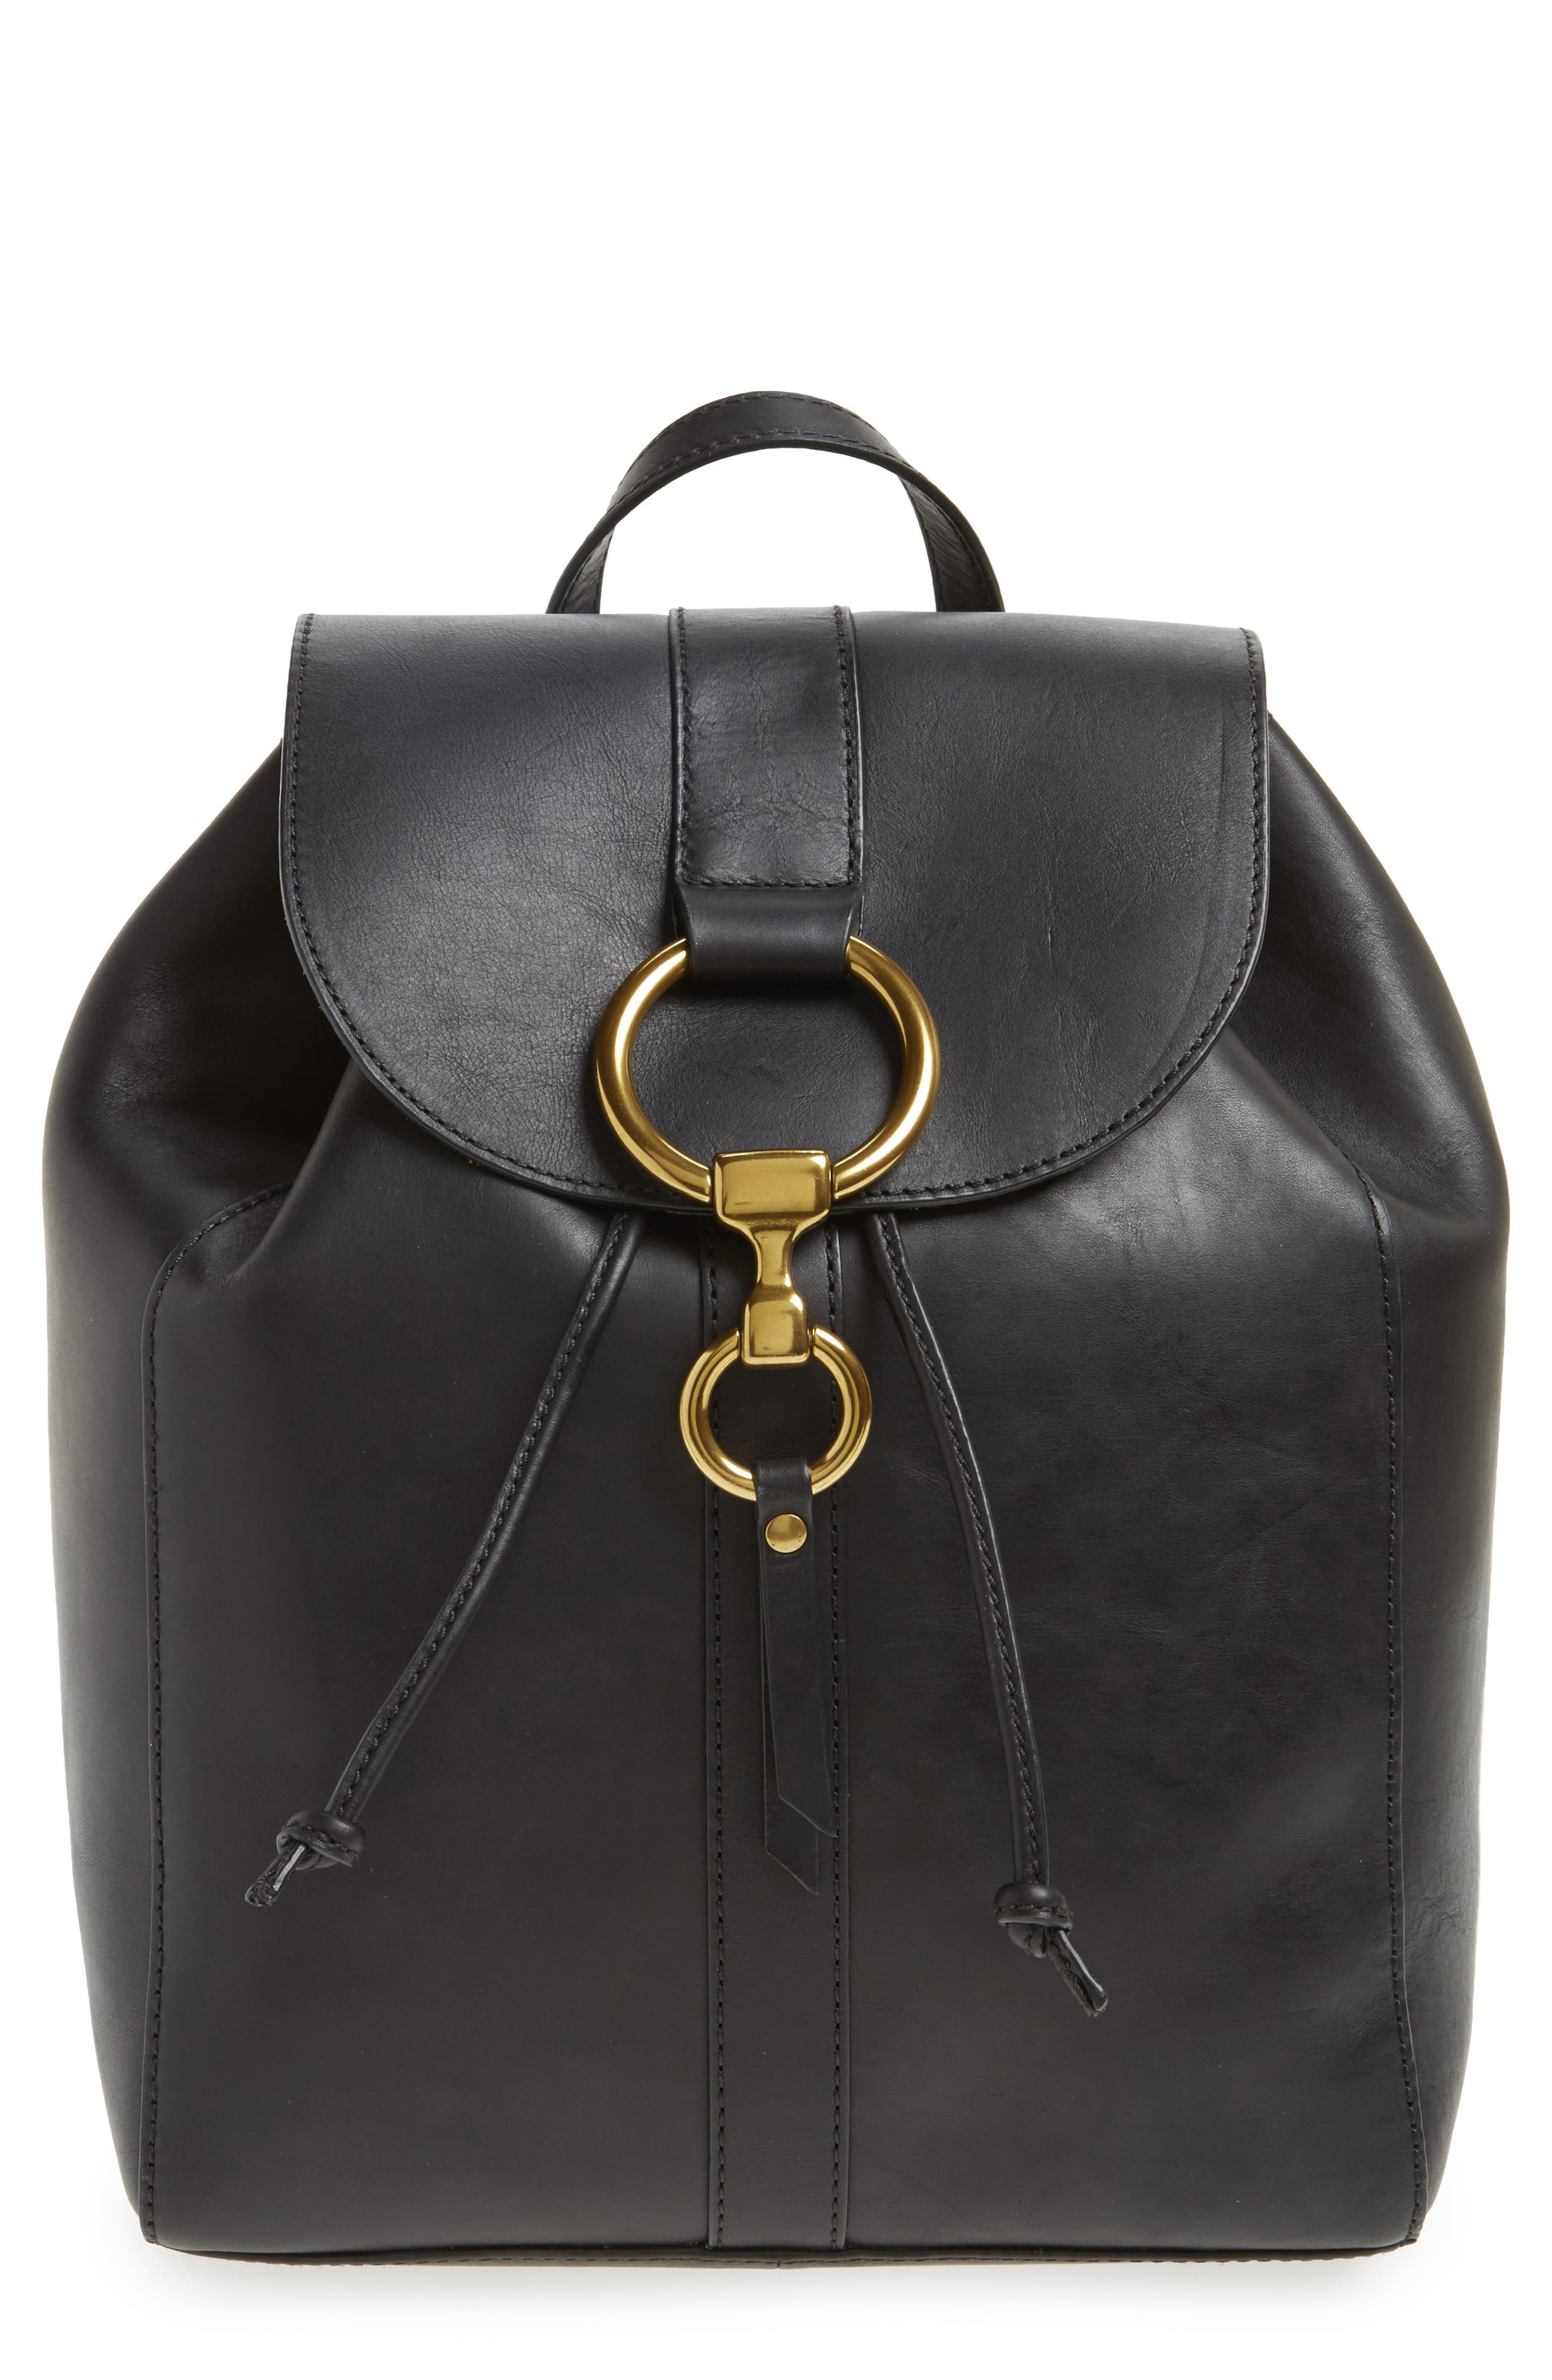 Ilana Harness Leather Backpack,                             Main thumbnail 1, color,                             001